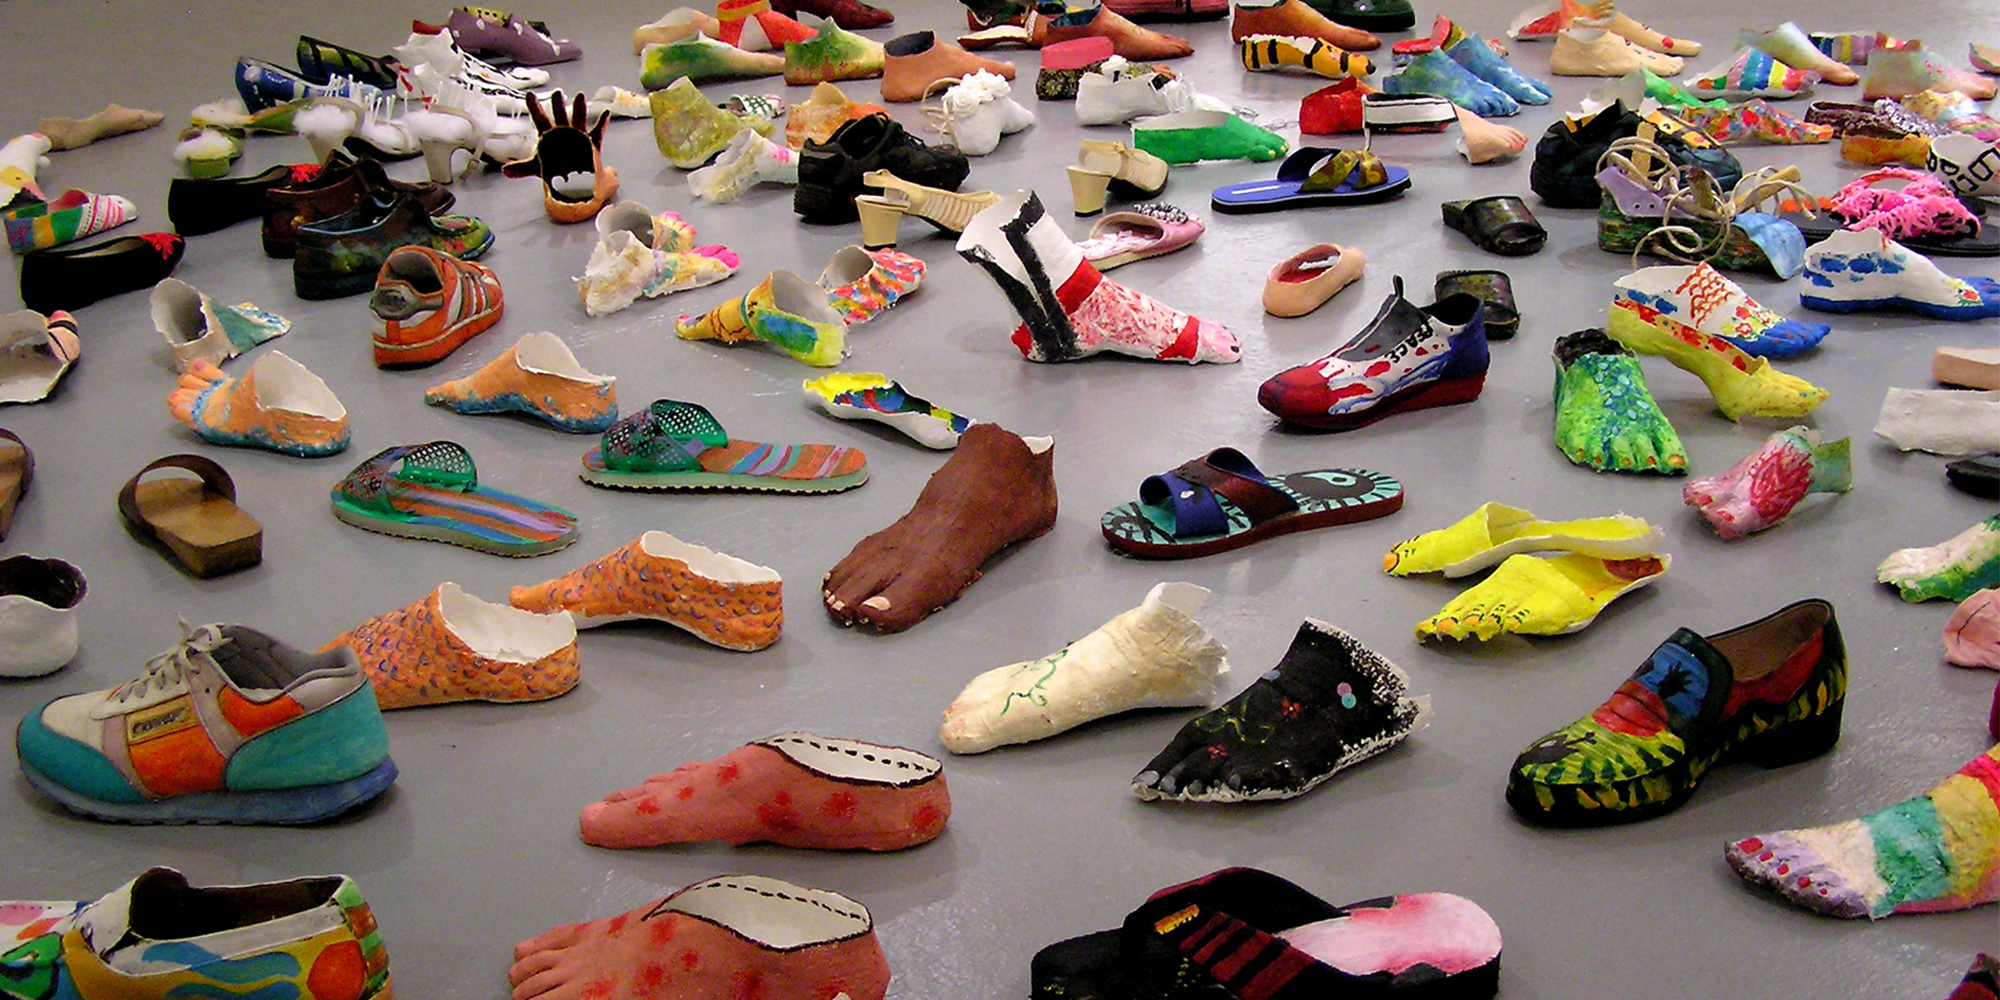 My Le Thi, Walk the Earth 1995-2005, Installation view with shoes, plaster-cast feet, video, Dimensions variable